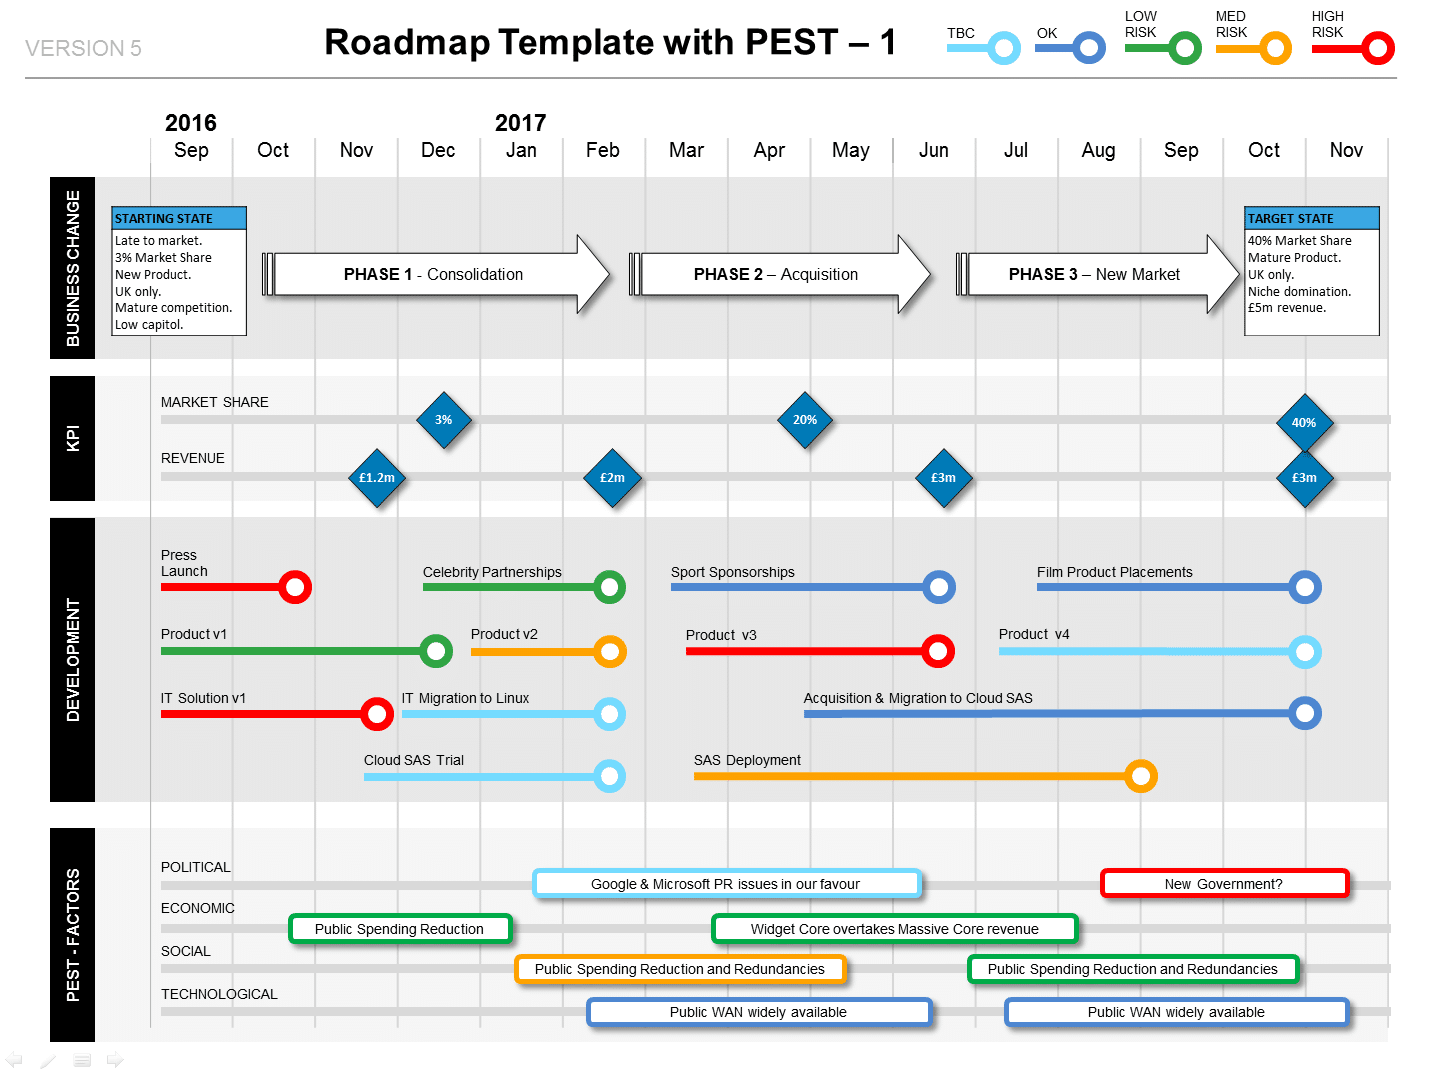 software development roadmap template roadmap with pest factors phases kpis milestones ppt